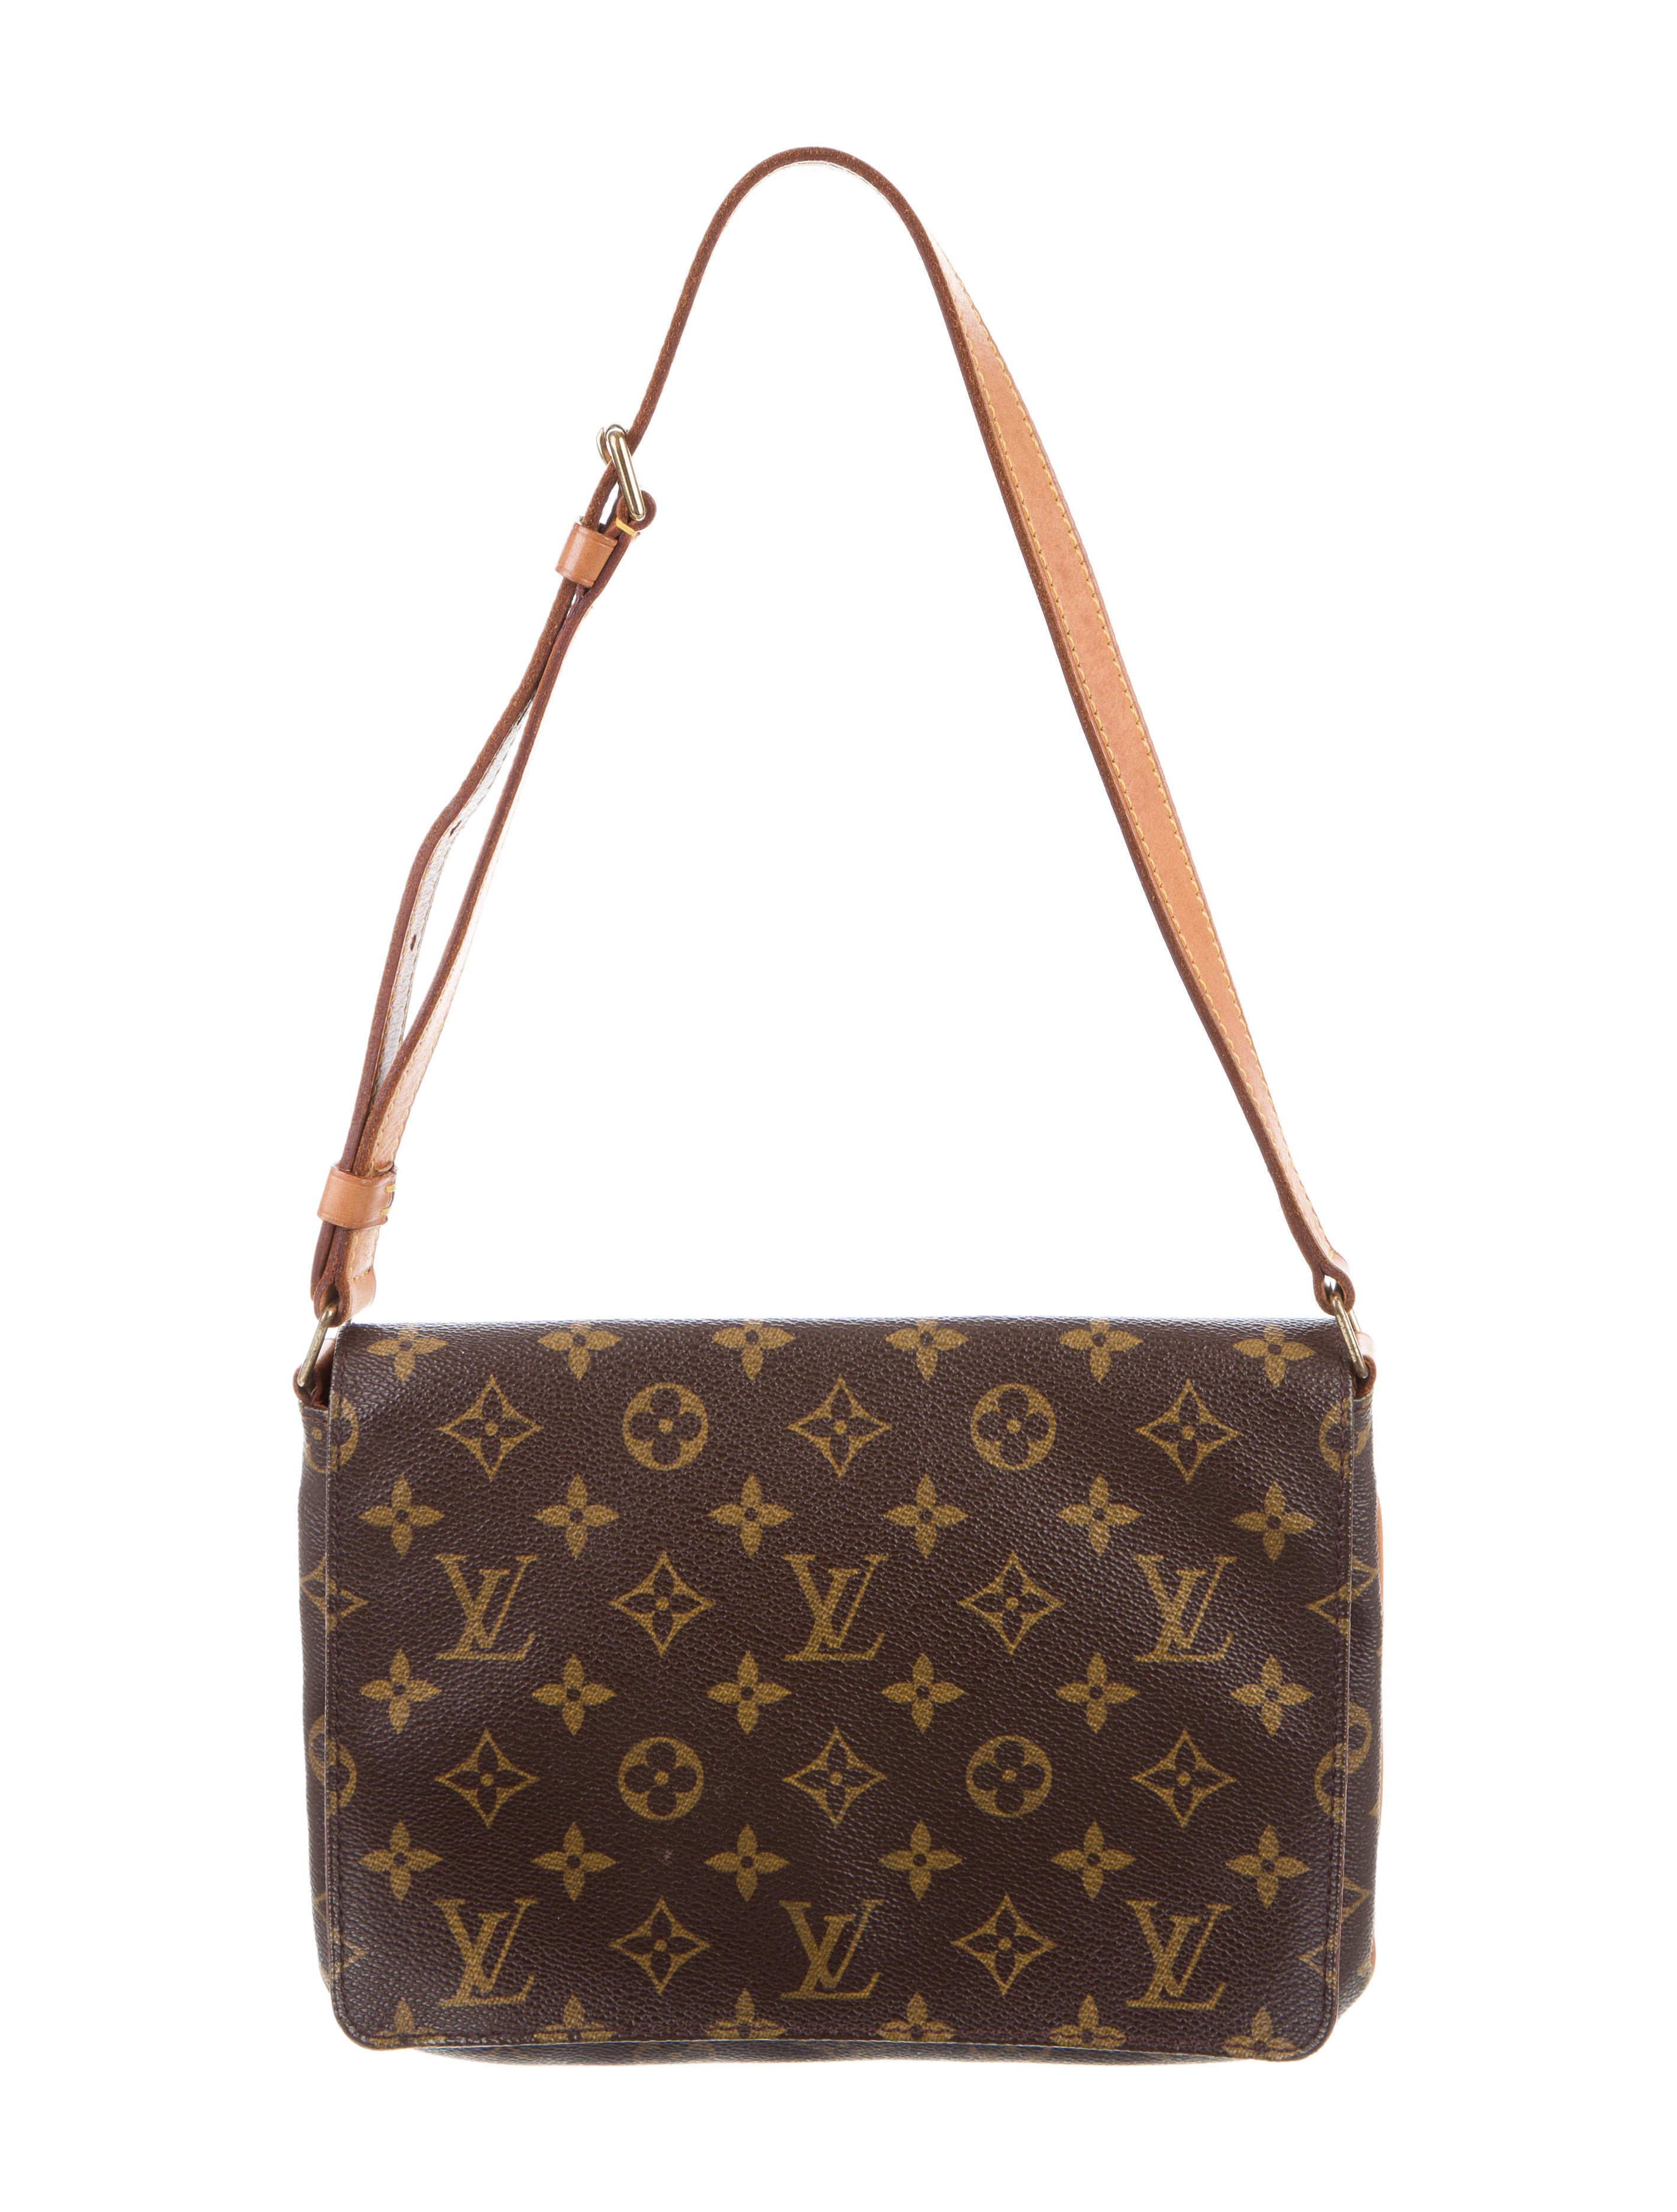 louis vuitton monogram musette tango bag handbags lou121526 the realreal. Black Bedroom Furniture Sets. Home Design Ideas